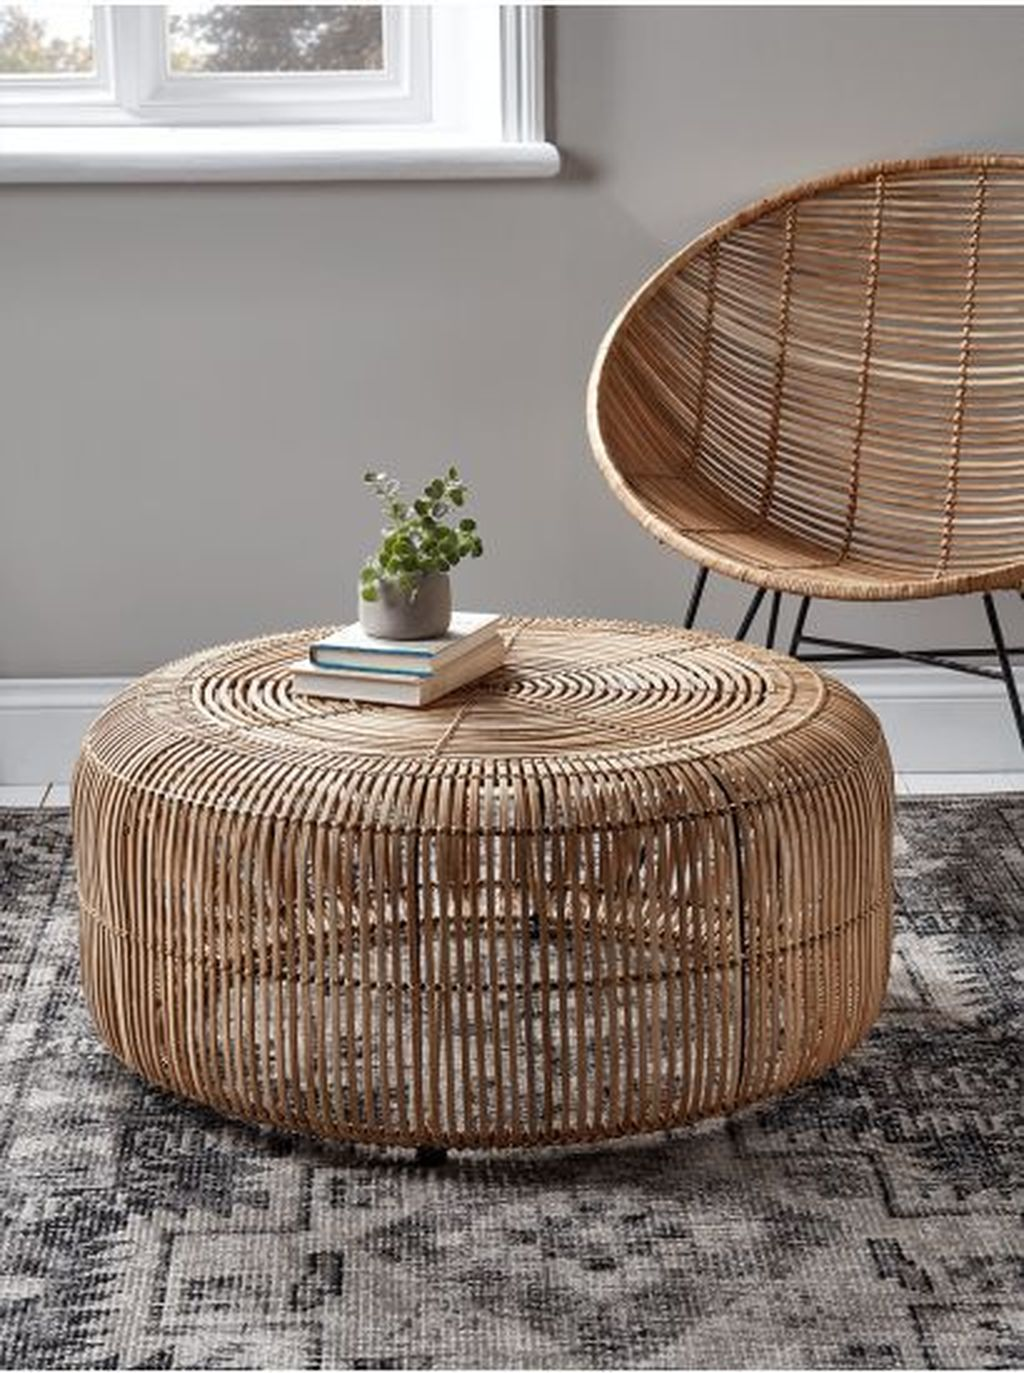 Stunning Rattan Furniture Design Ideas 18